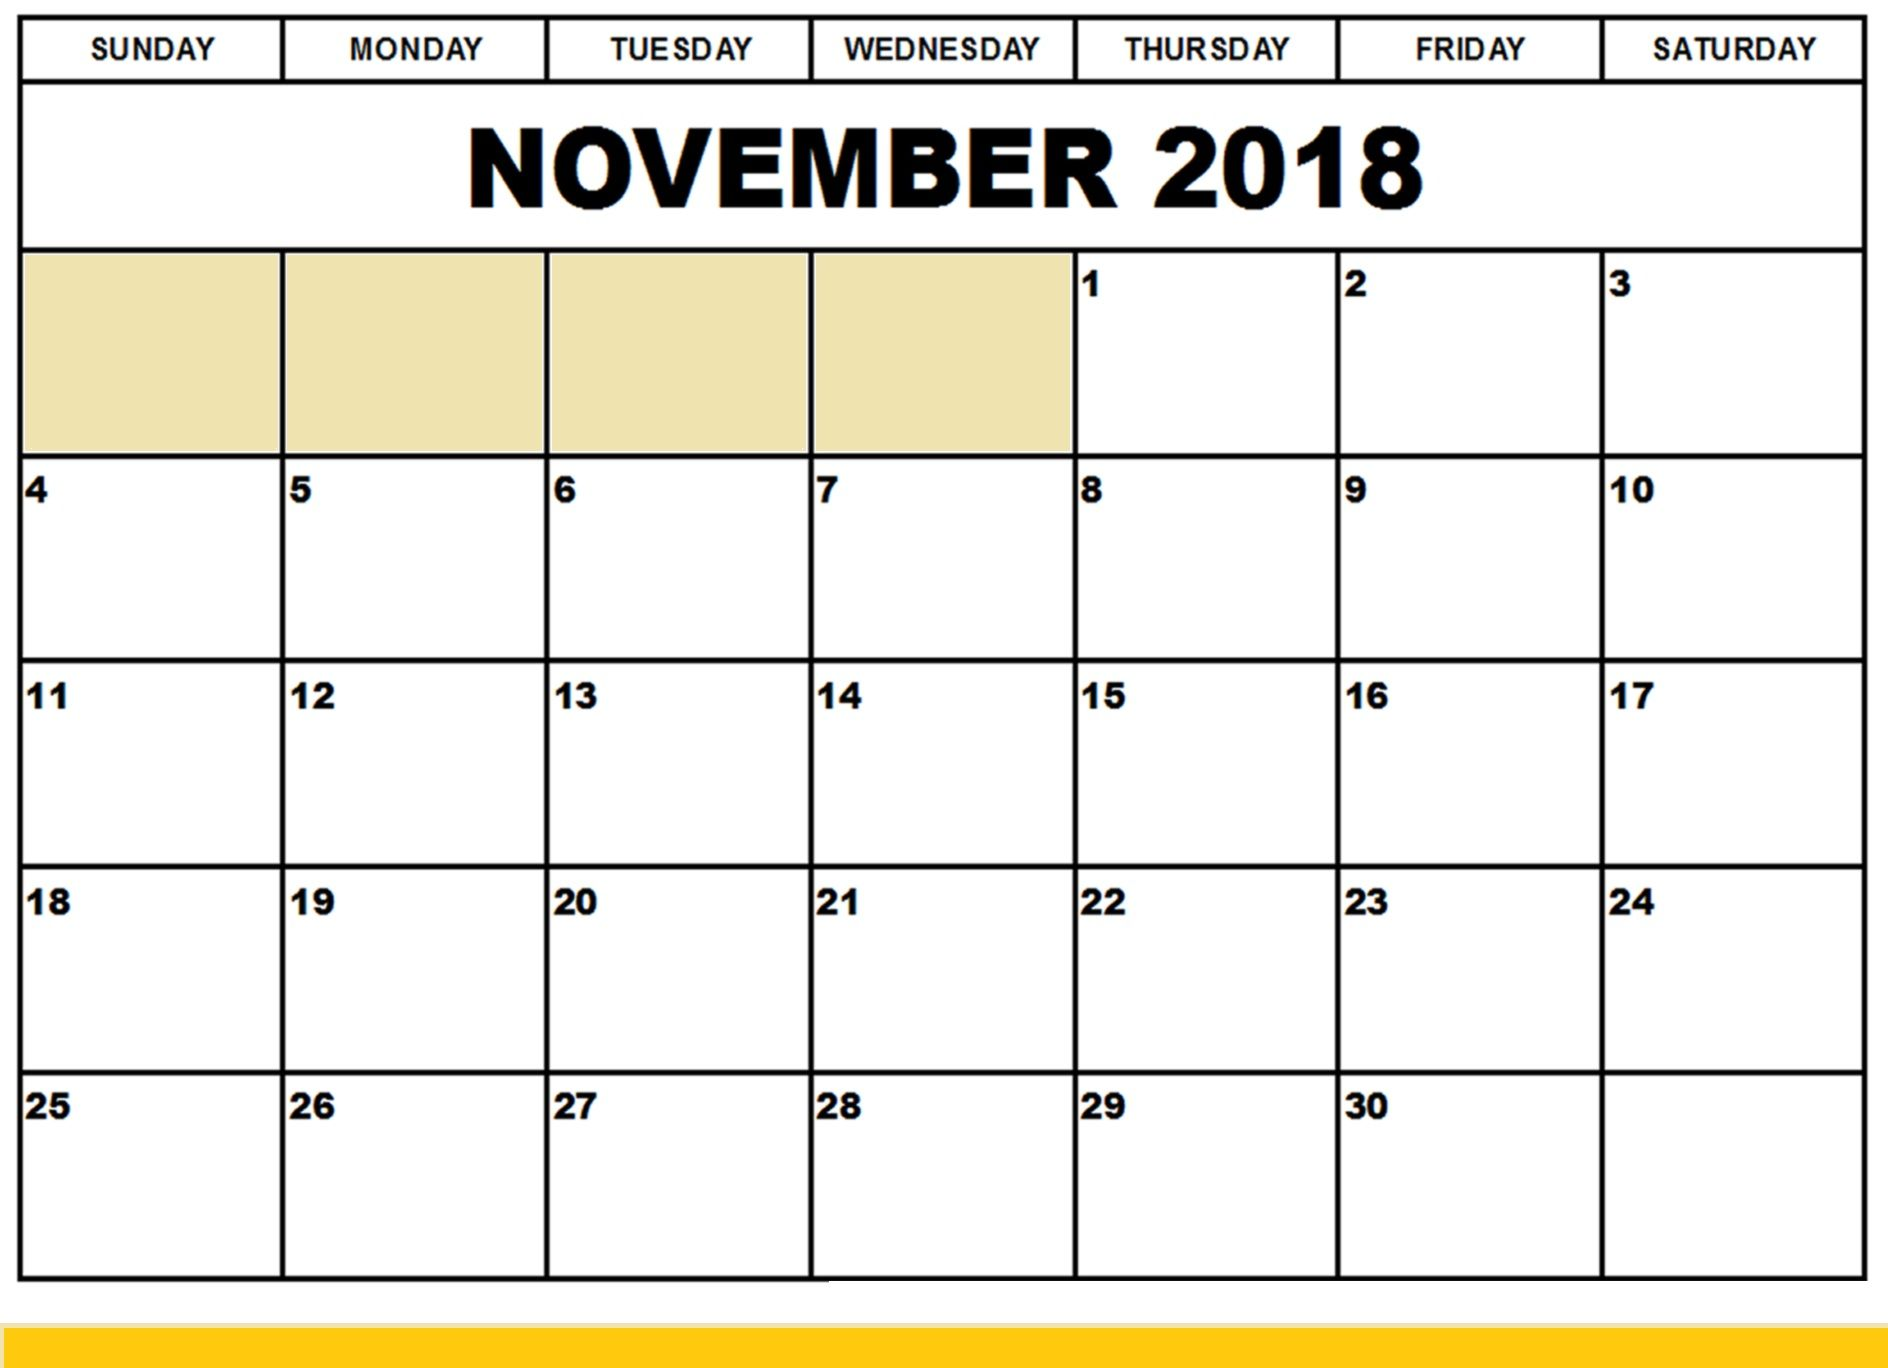 november 2018 calendar uk free download calendar download november